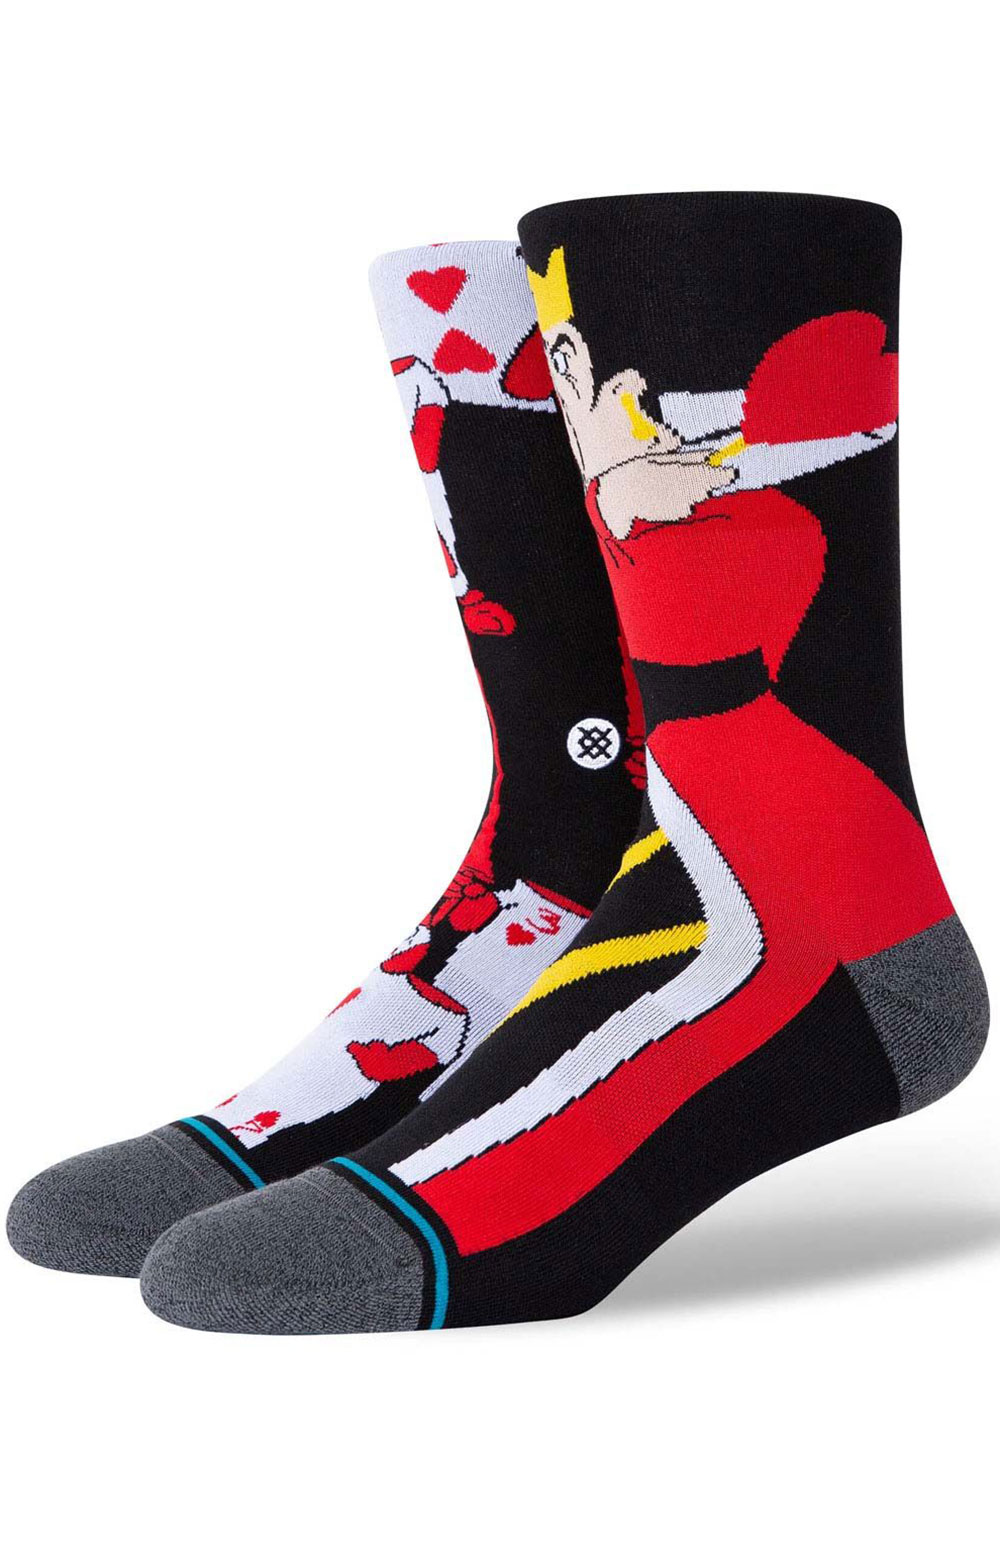 Off With Their Heads Socks - Black